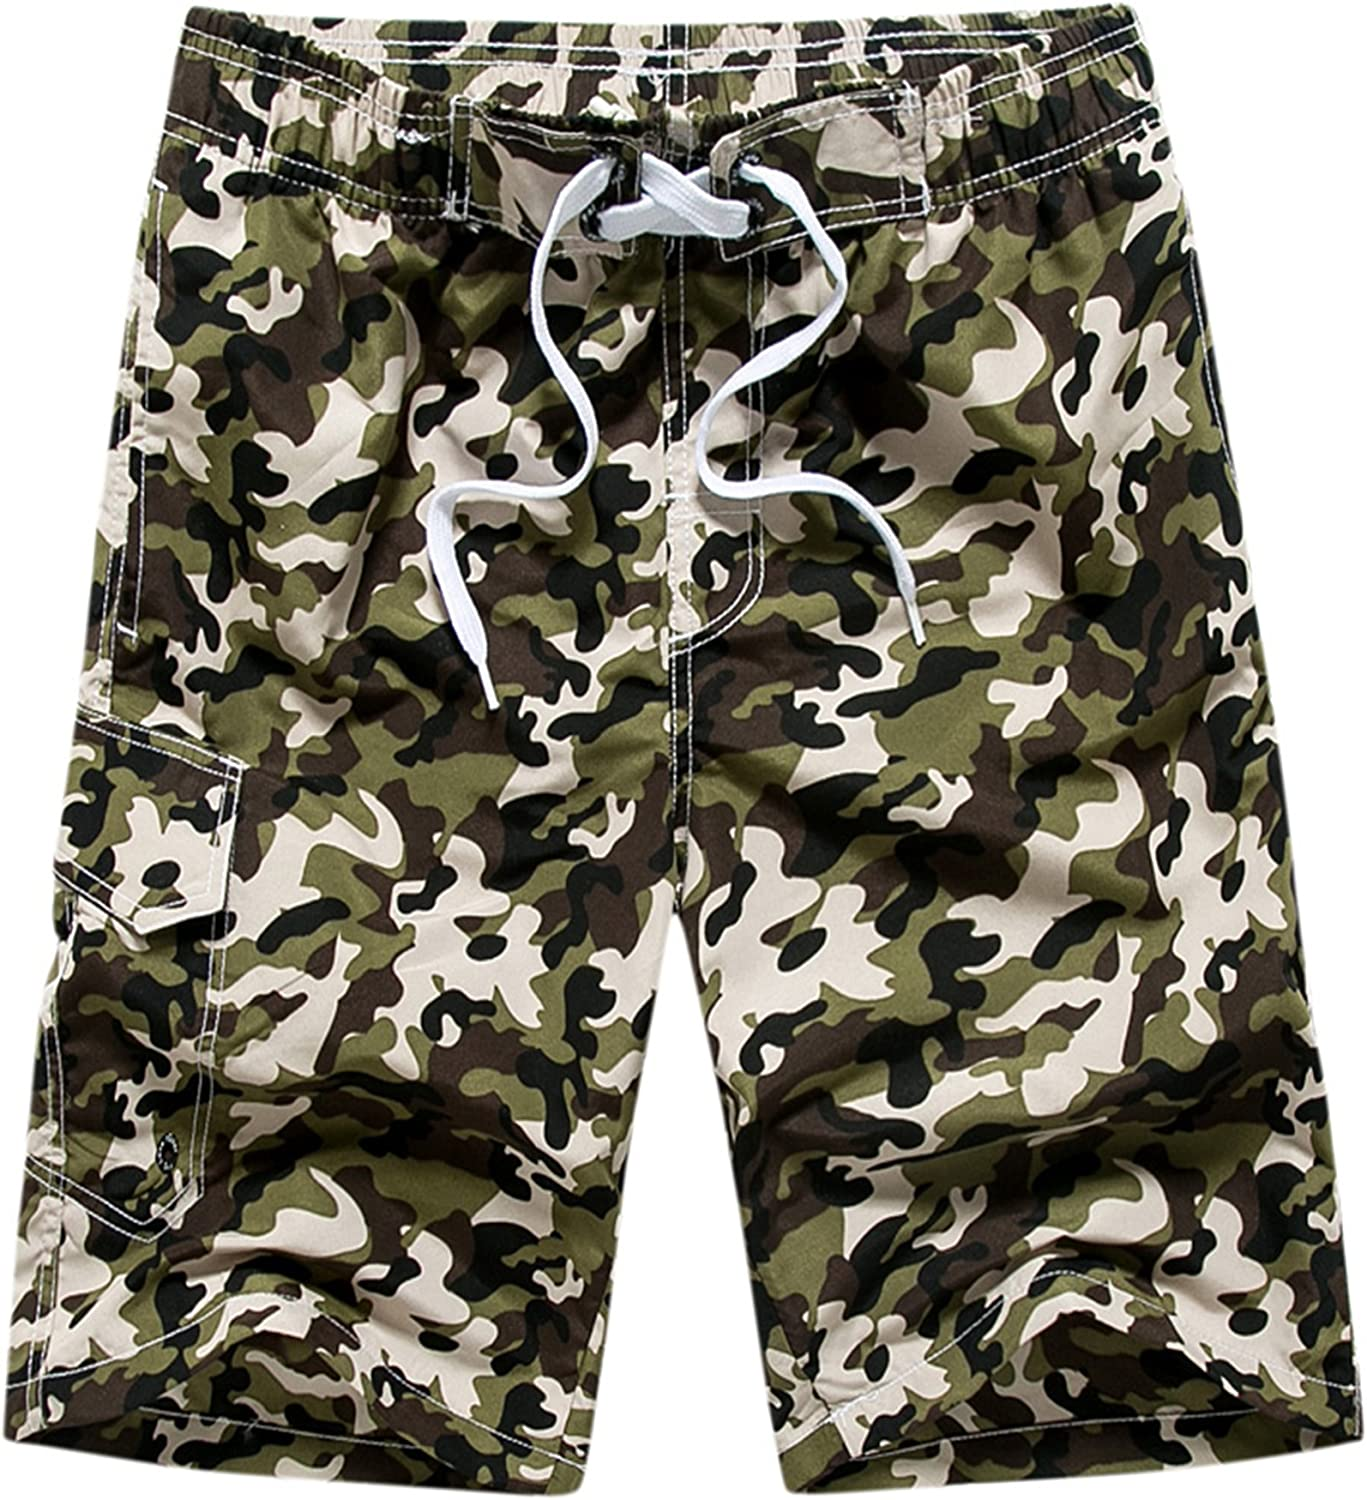 9e94371d2b MACHLAB Men's Camouflage Camouflage Camouflage Printing Quick Dry Beach Board  Shorts Swim Trunks c4be63